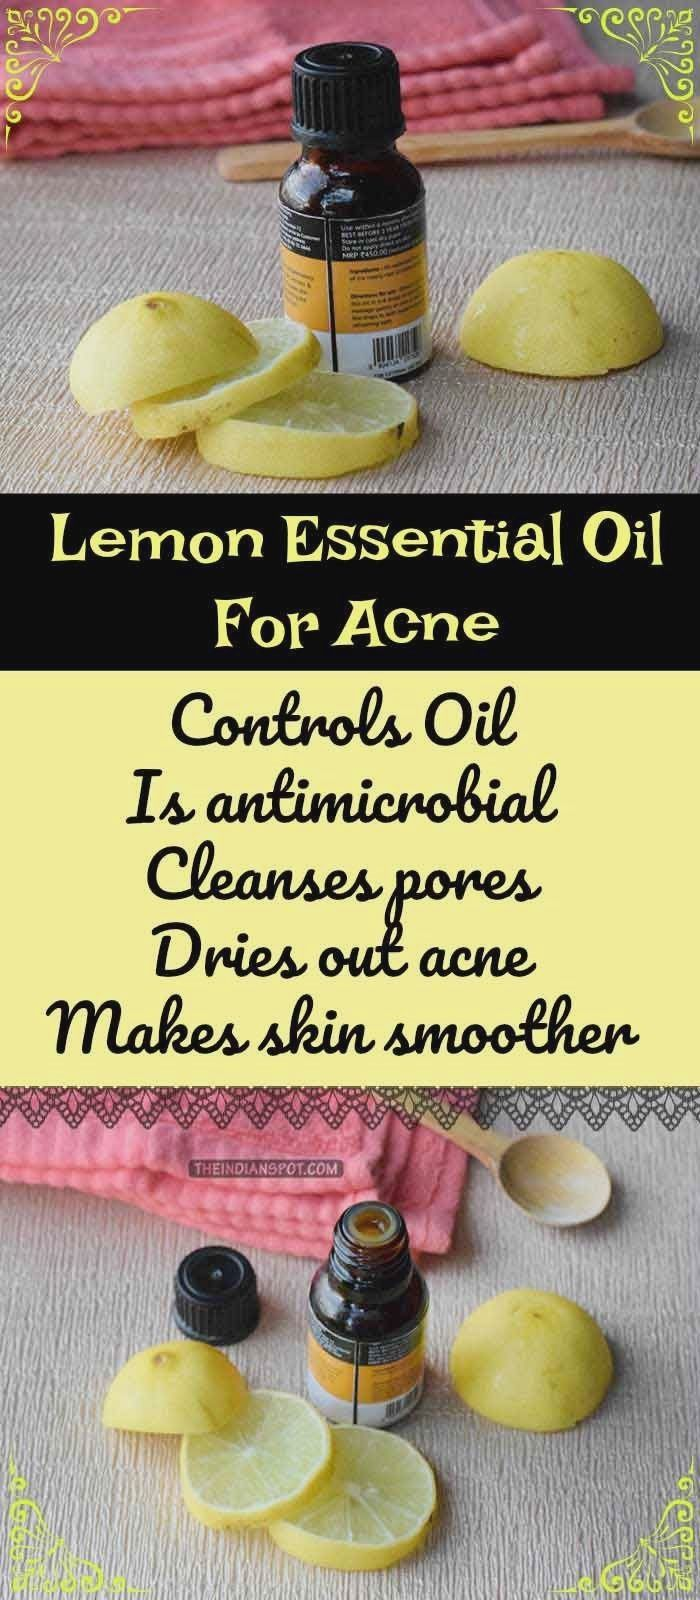 Find out how to deal with acne throughout using chemical